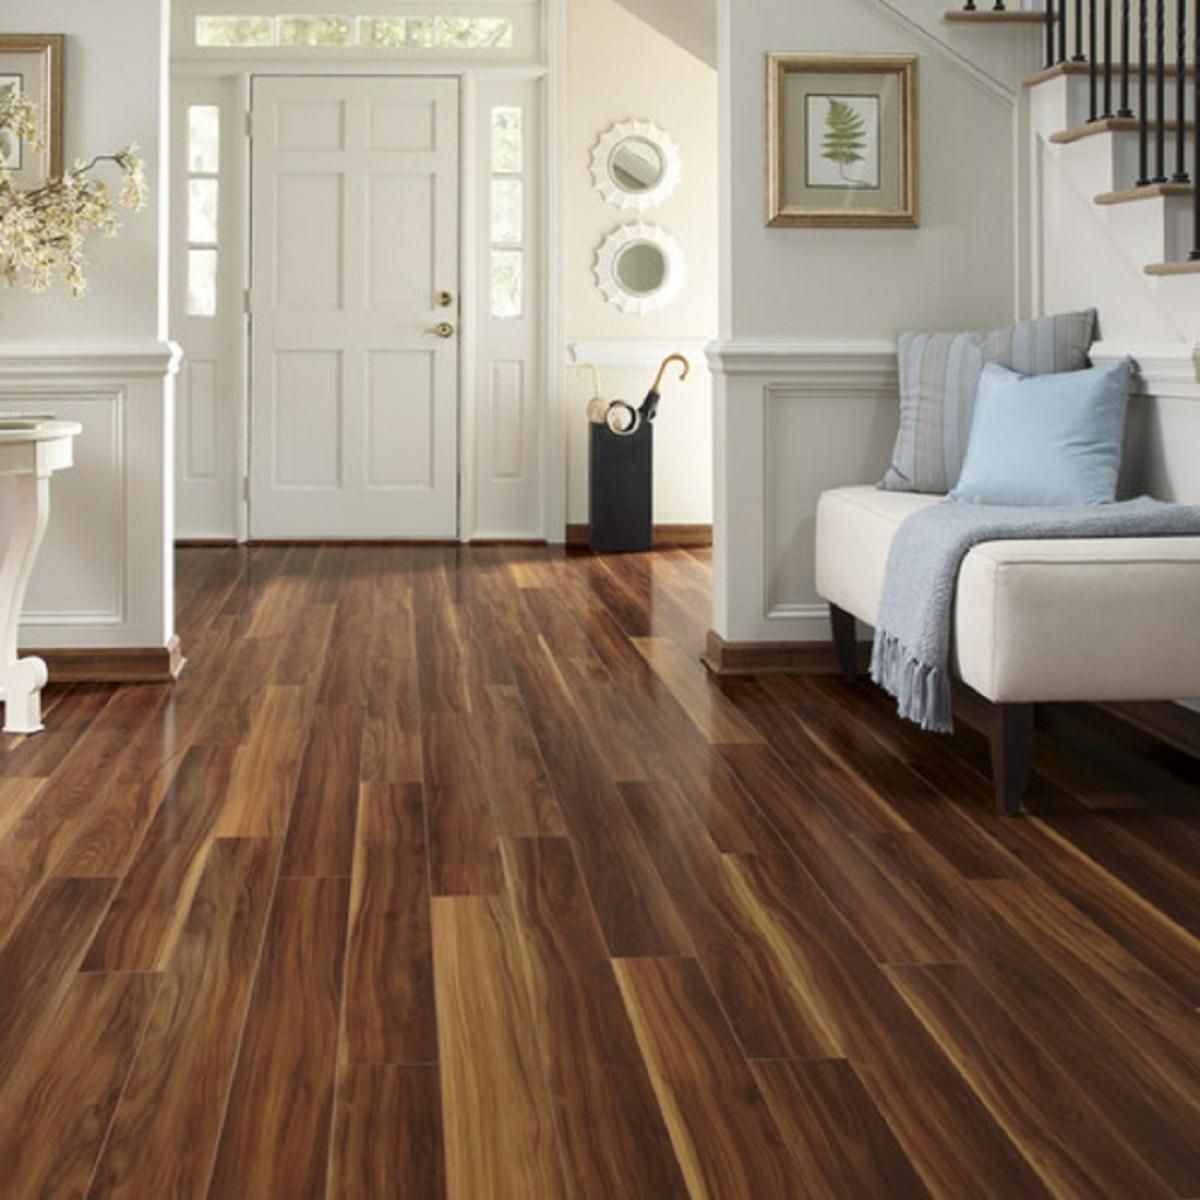 Waterproof Laminate Flooring Is The Dream Of Homeowners Who Want Convenience But